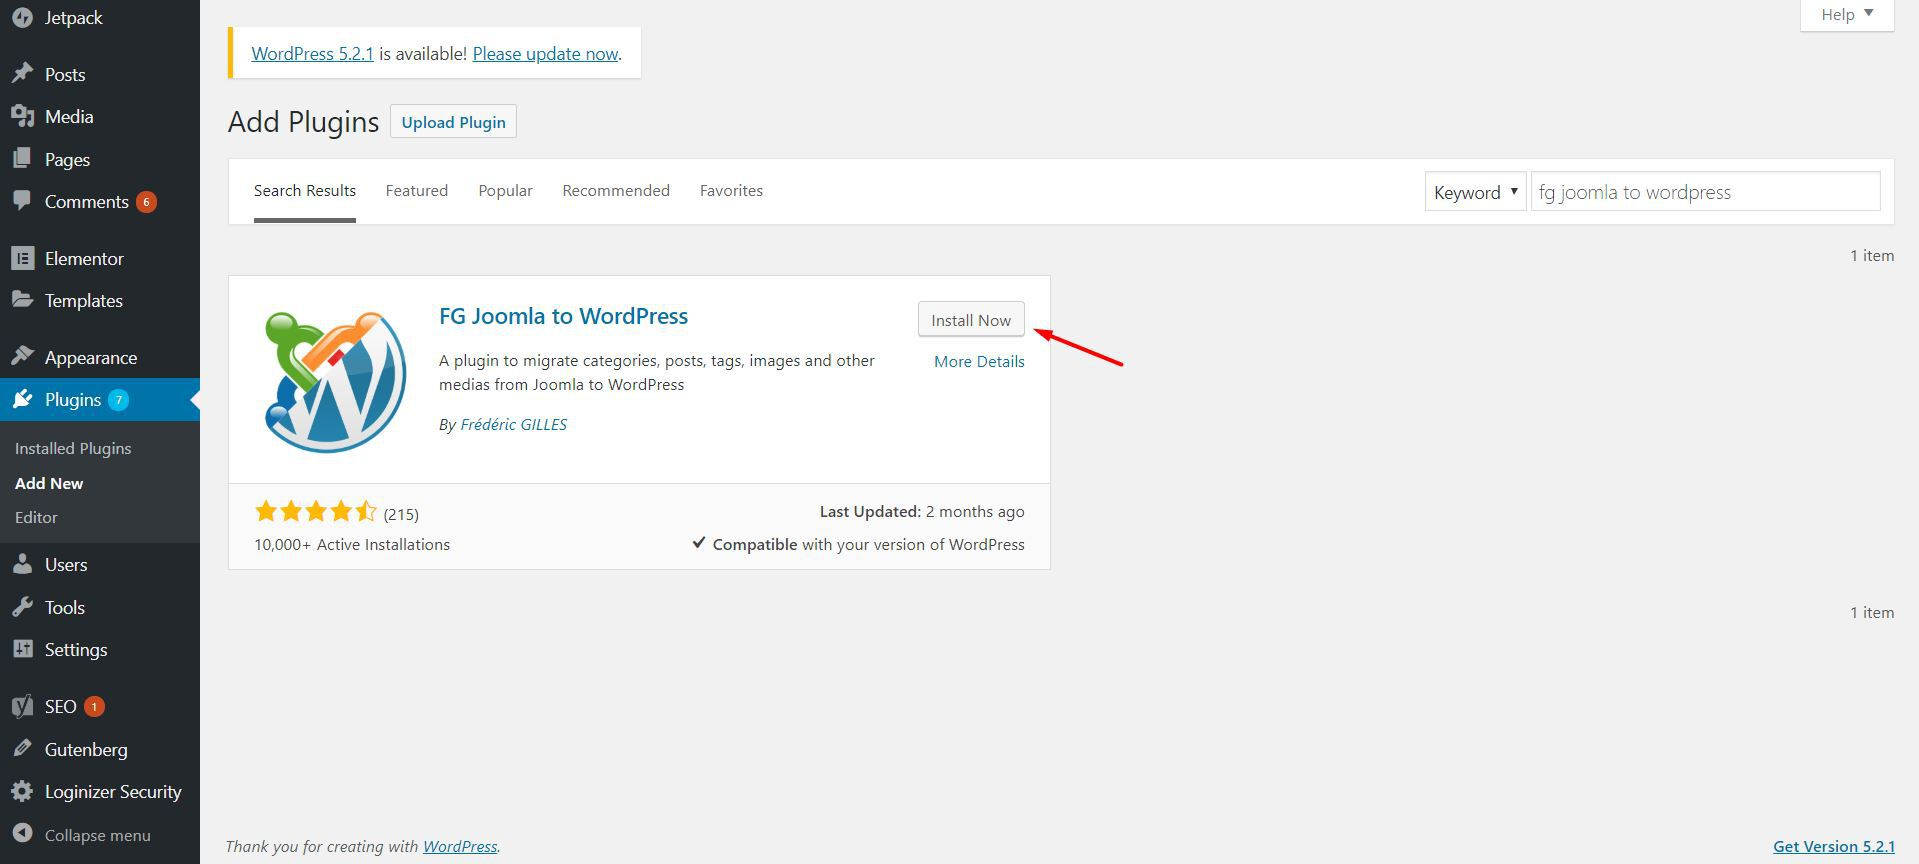 Installing FG Joomla to WordPress plugin.